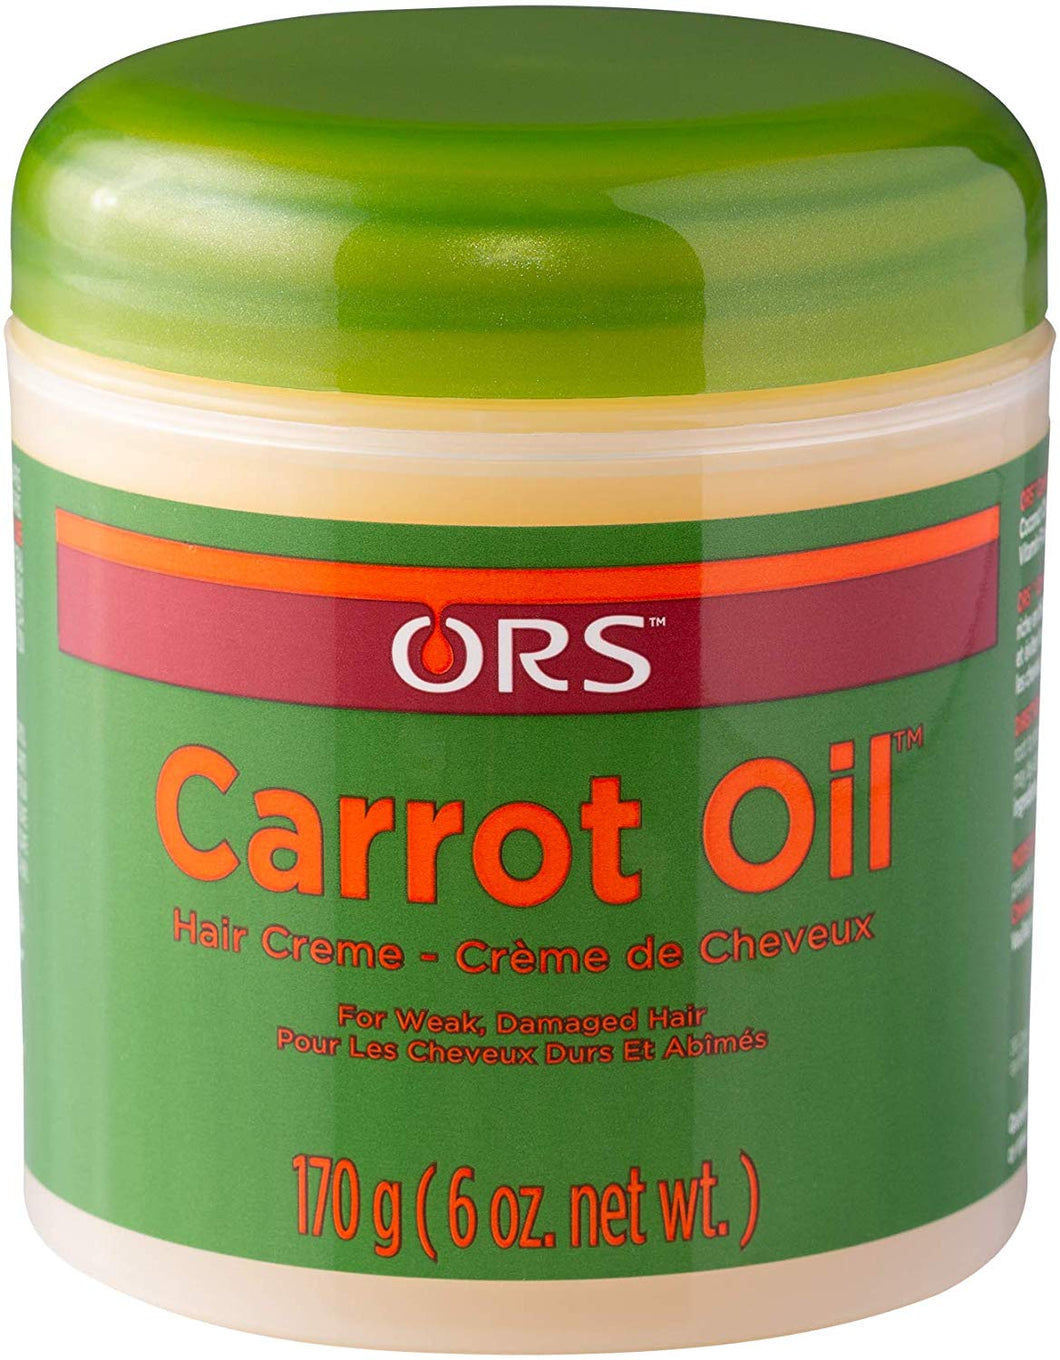 ORS Carrot Oil Hair Creme 170g